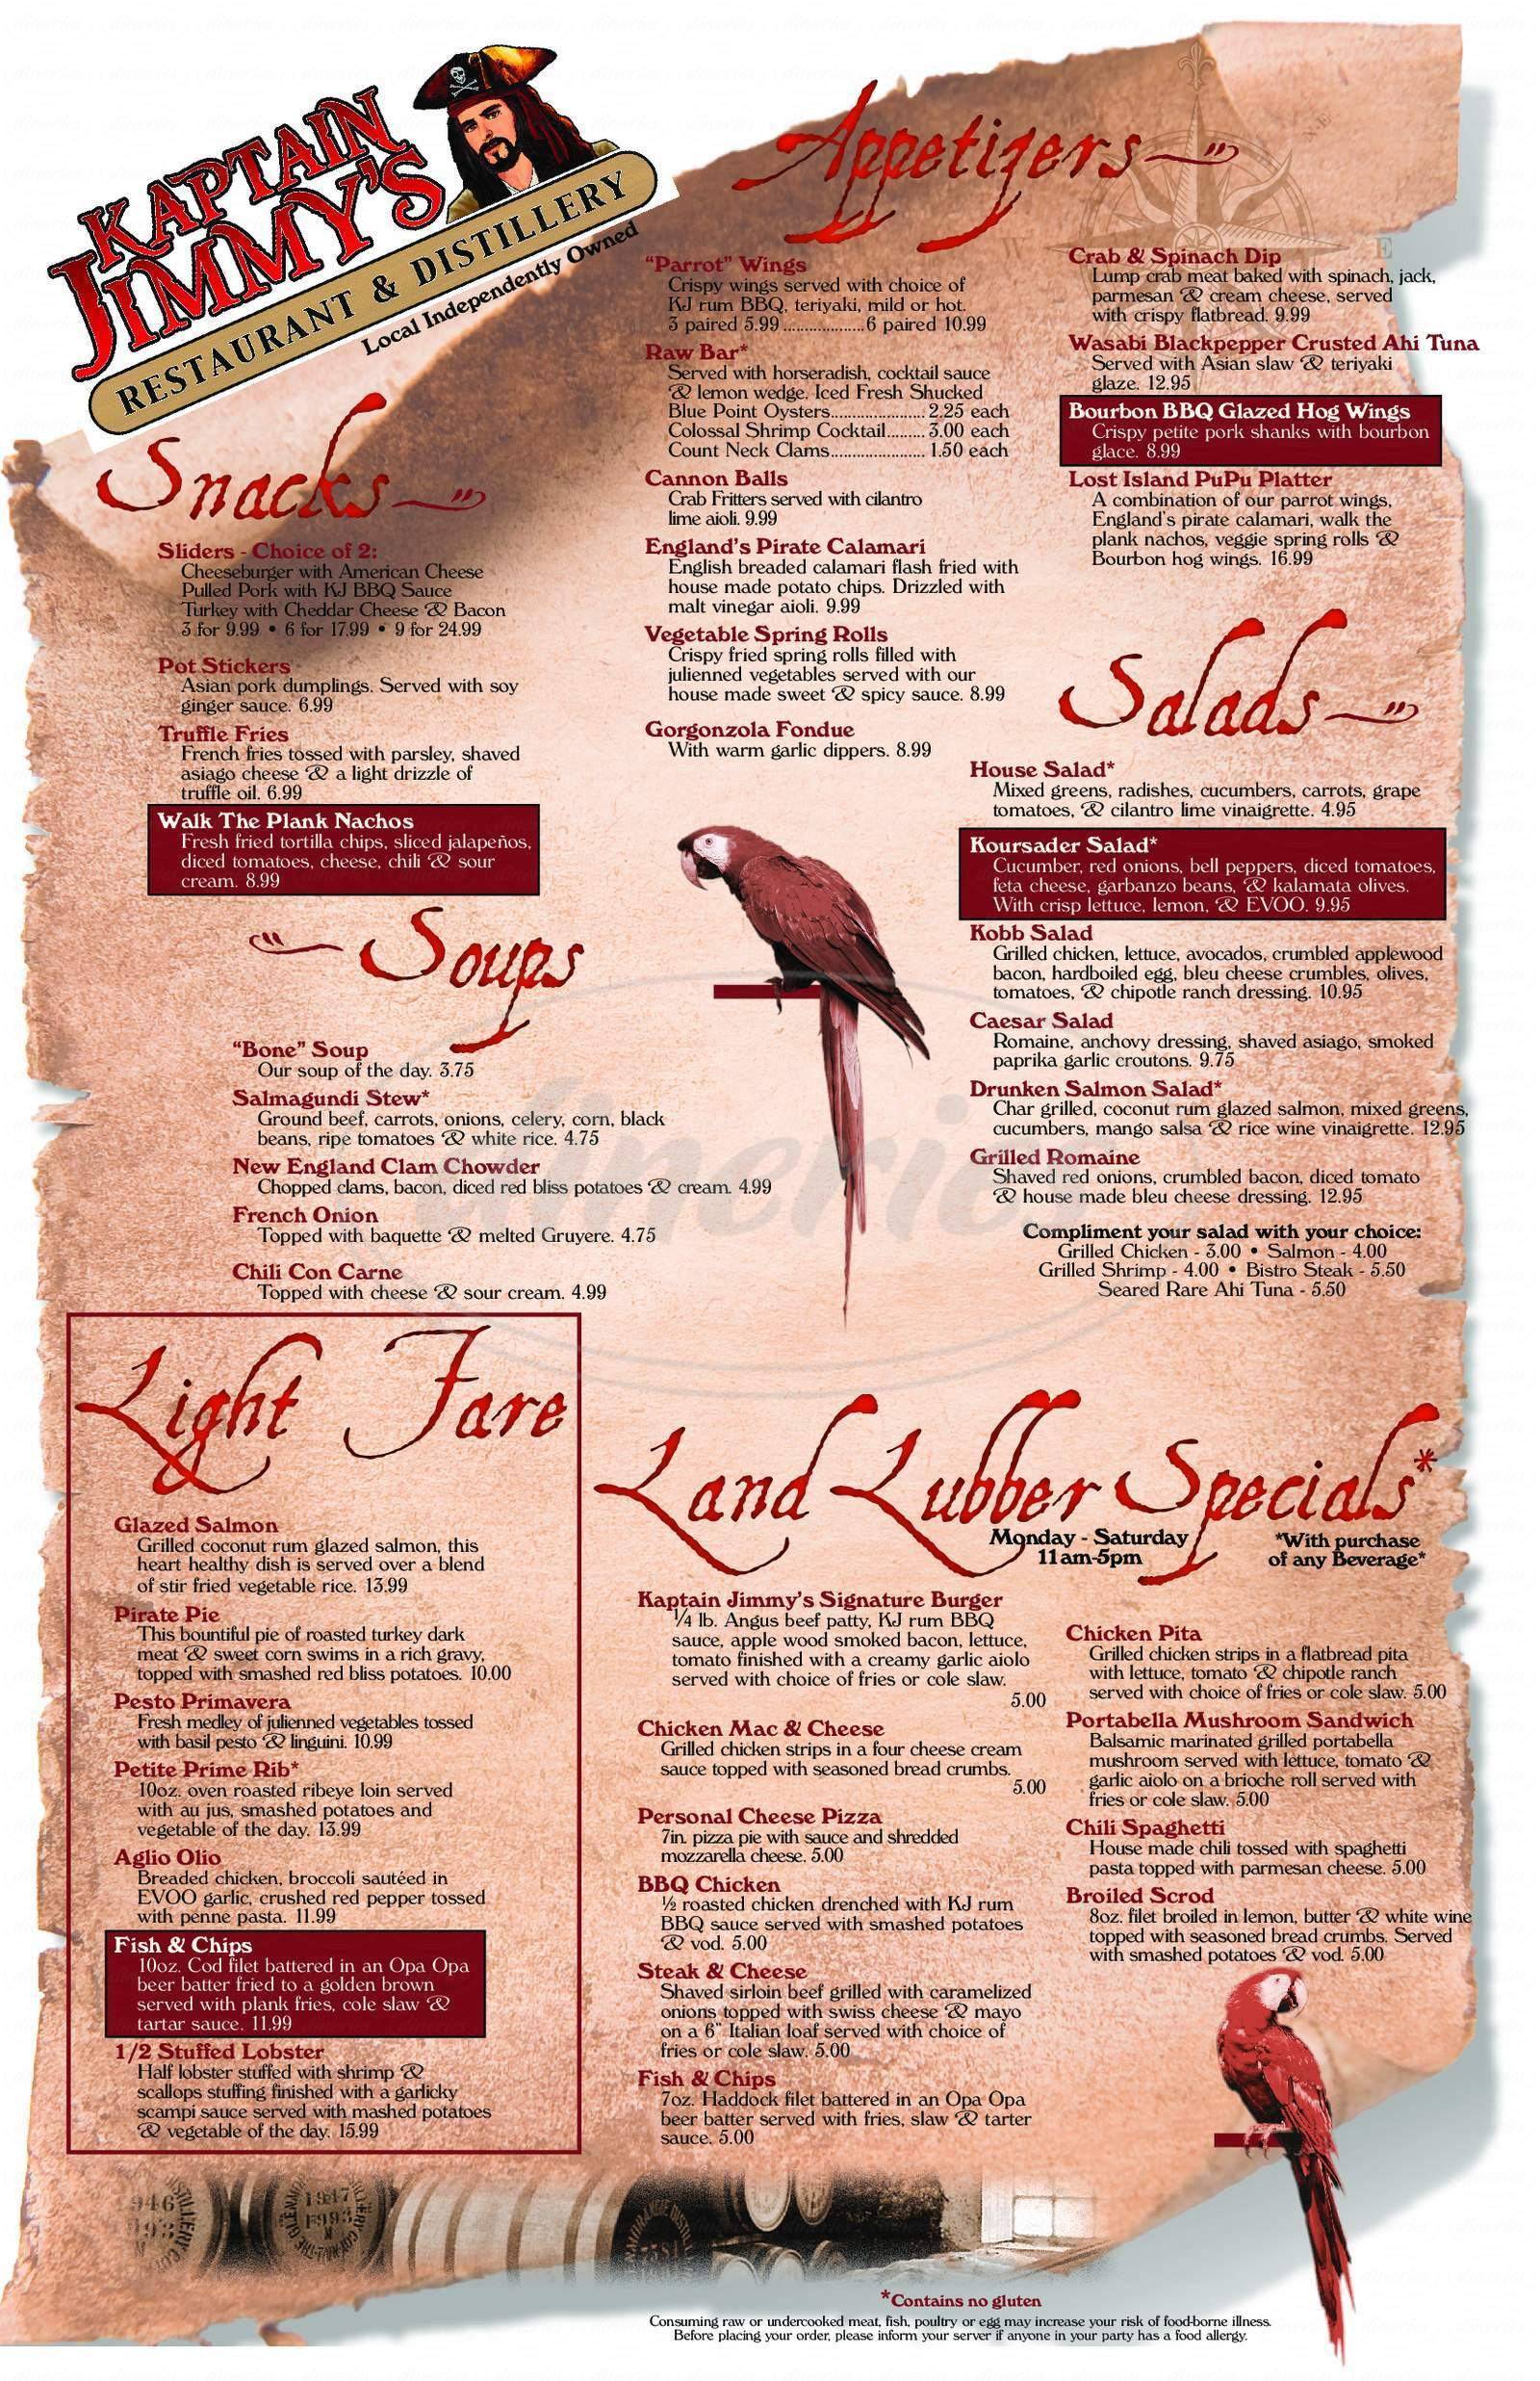 menu for Kaptain Jimmy's